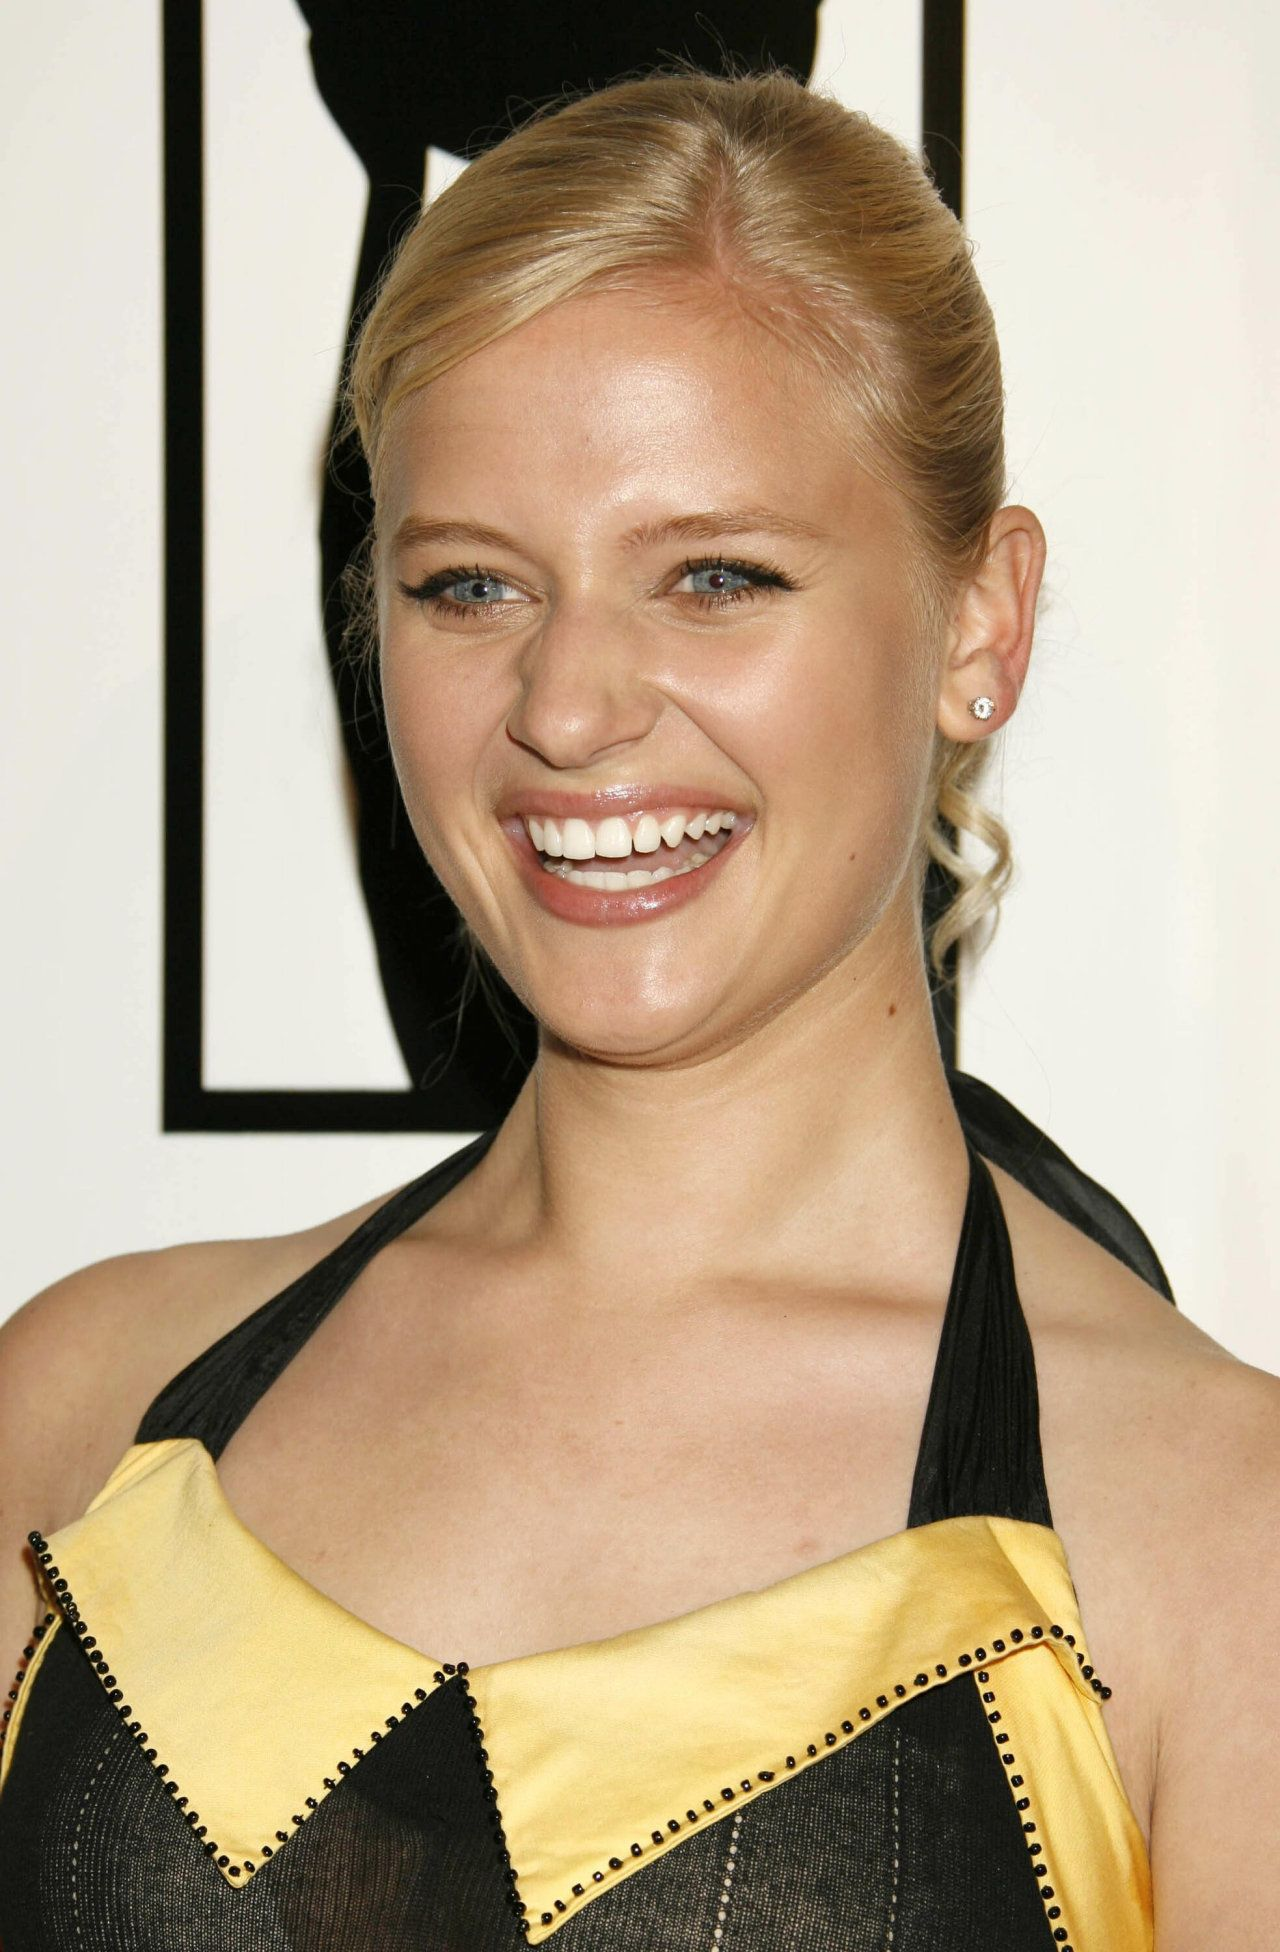 carly schroeder moviescarly schroeder instagram, carly schroeder, carly schroeder imdb, carly schroeder boyfriend, carly schroeder movies, carly schroeder hot, carly schroeder net worth, carly schroeder twitter, carly schroeder facebook, carly schroeder 2014, carly schroeder mean creek, carly schroeder prey